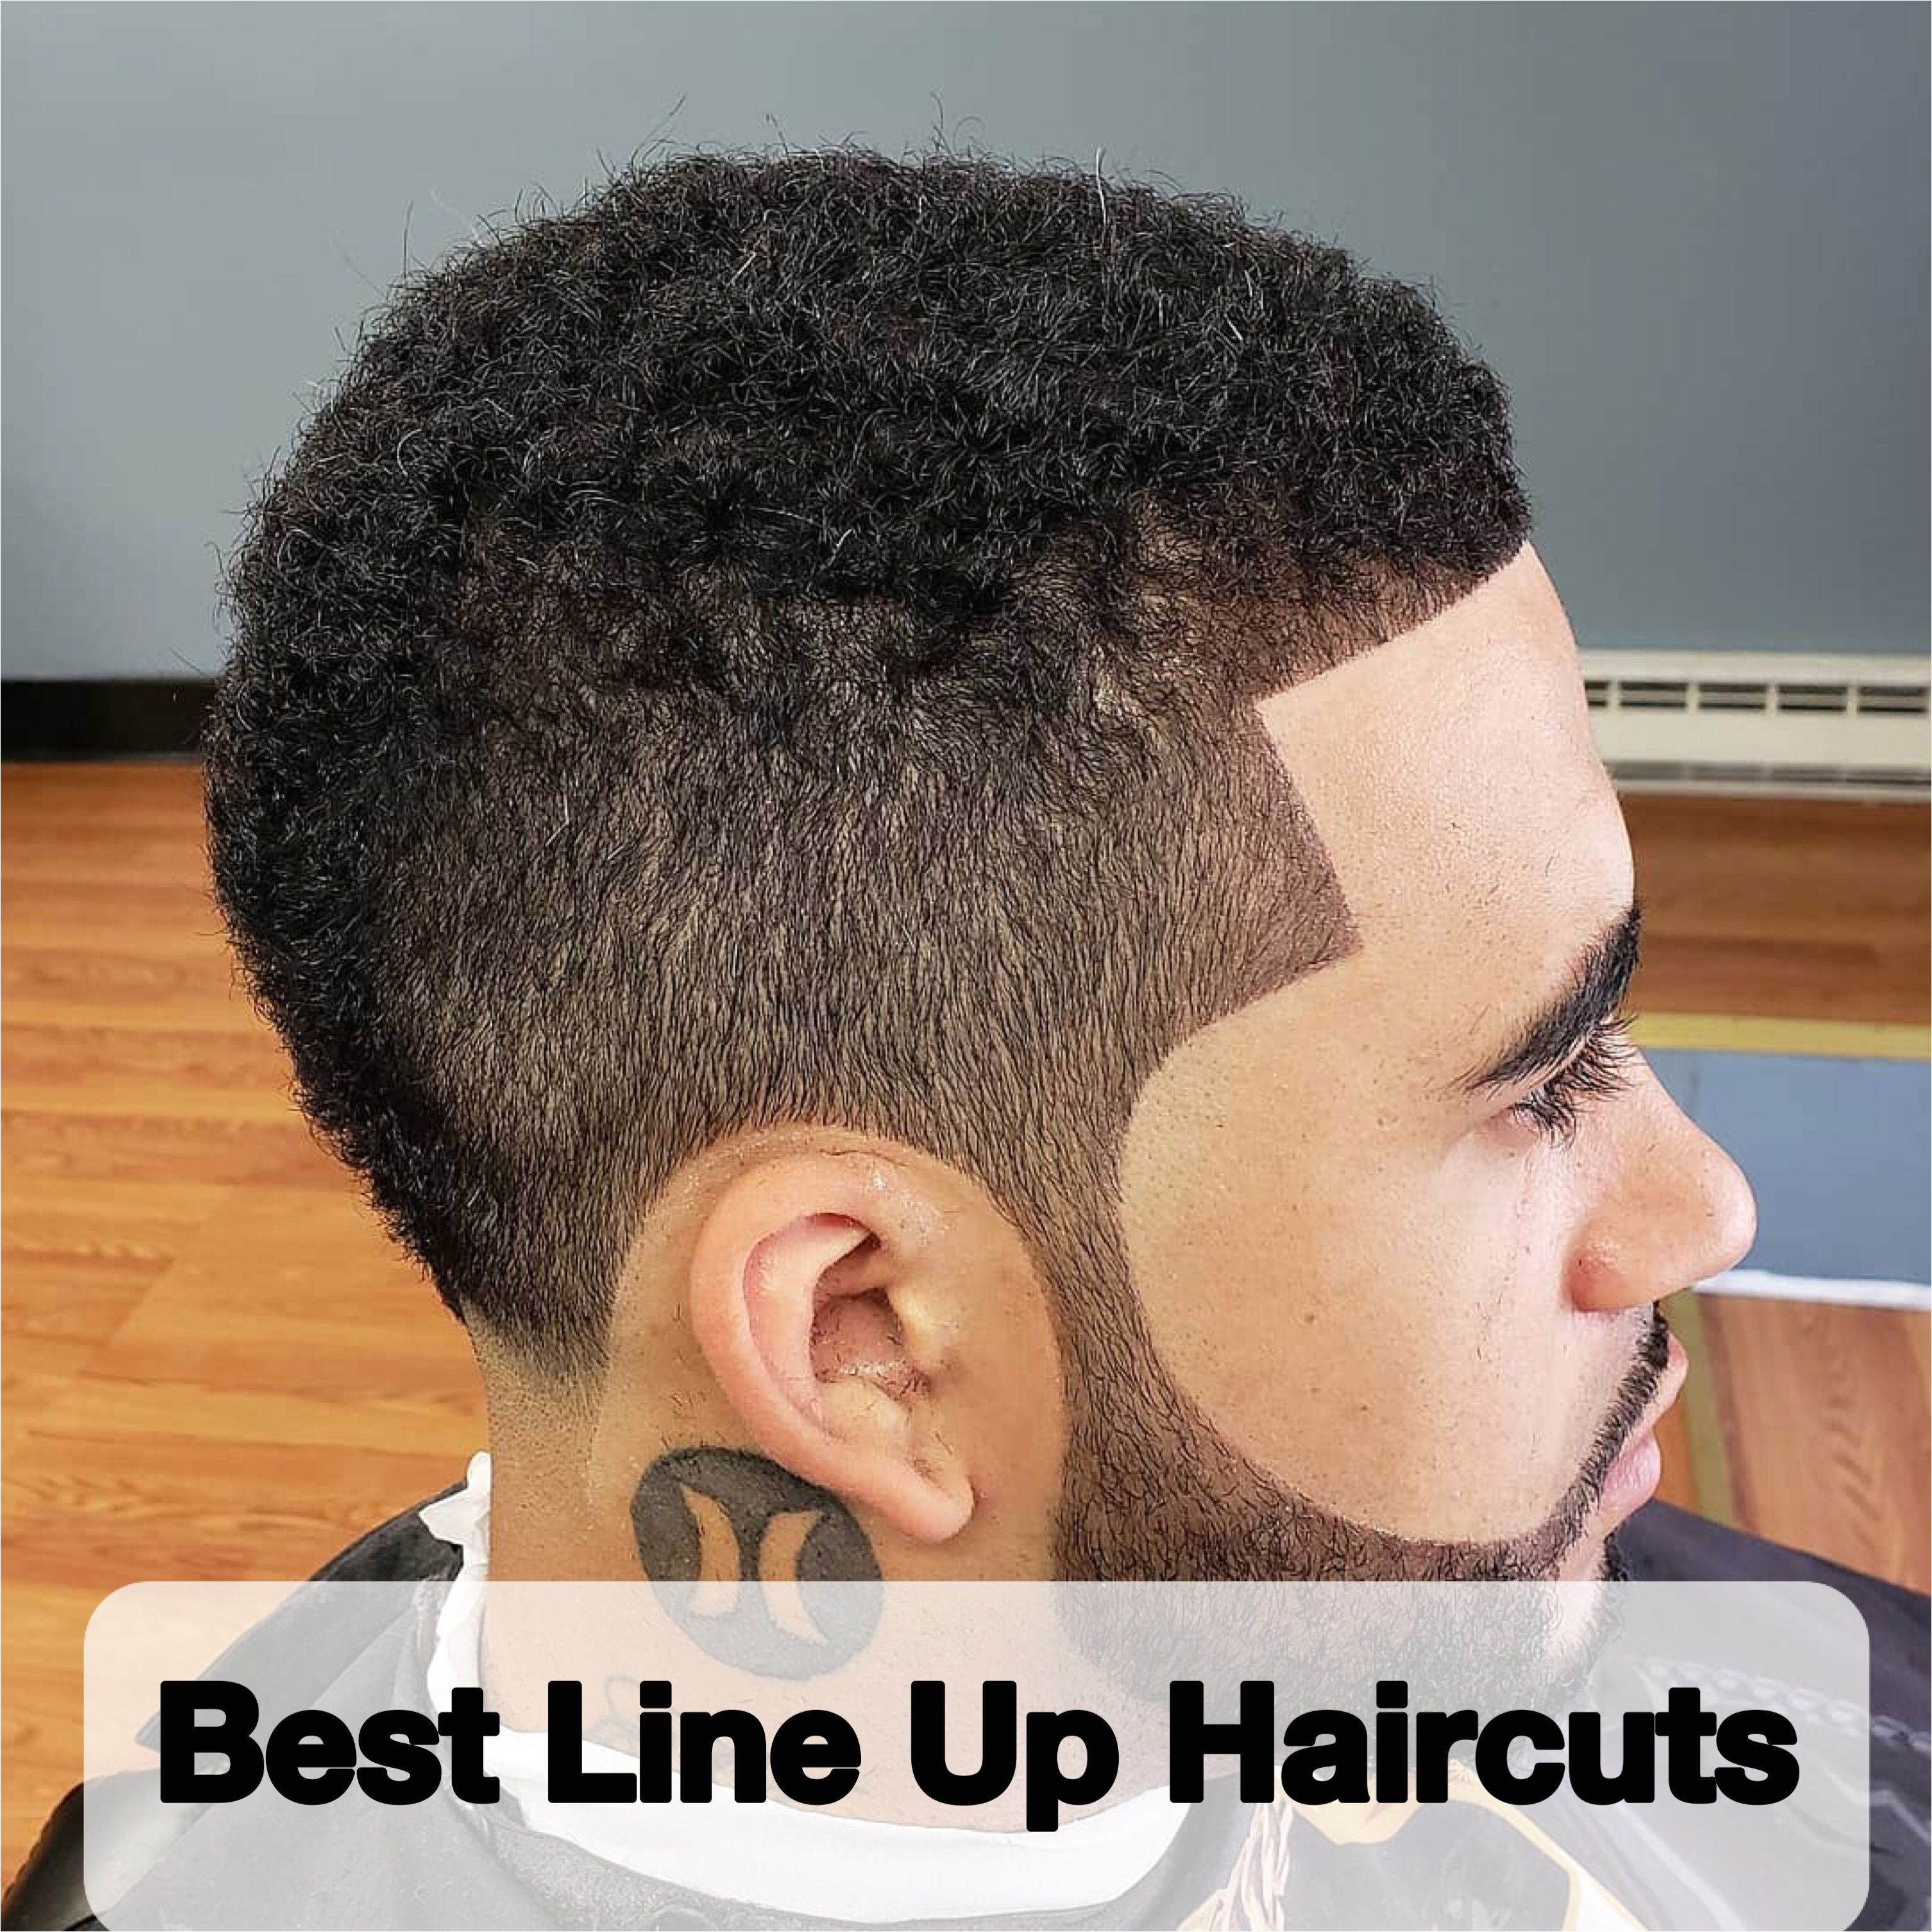 Fade Hairstyle for Guys Luxury What is Line Up Haircut 20 Best Line Up Haircuts